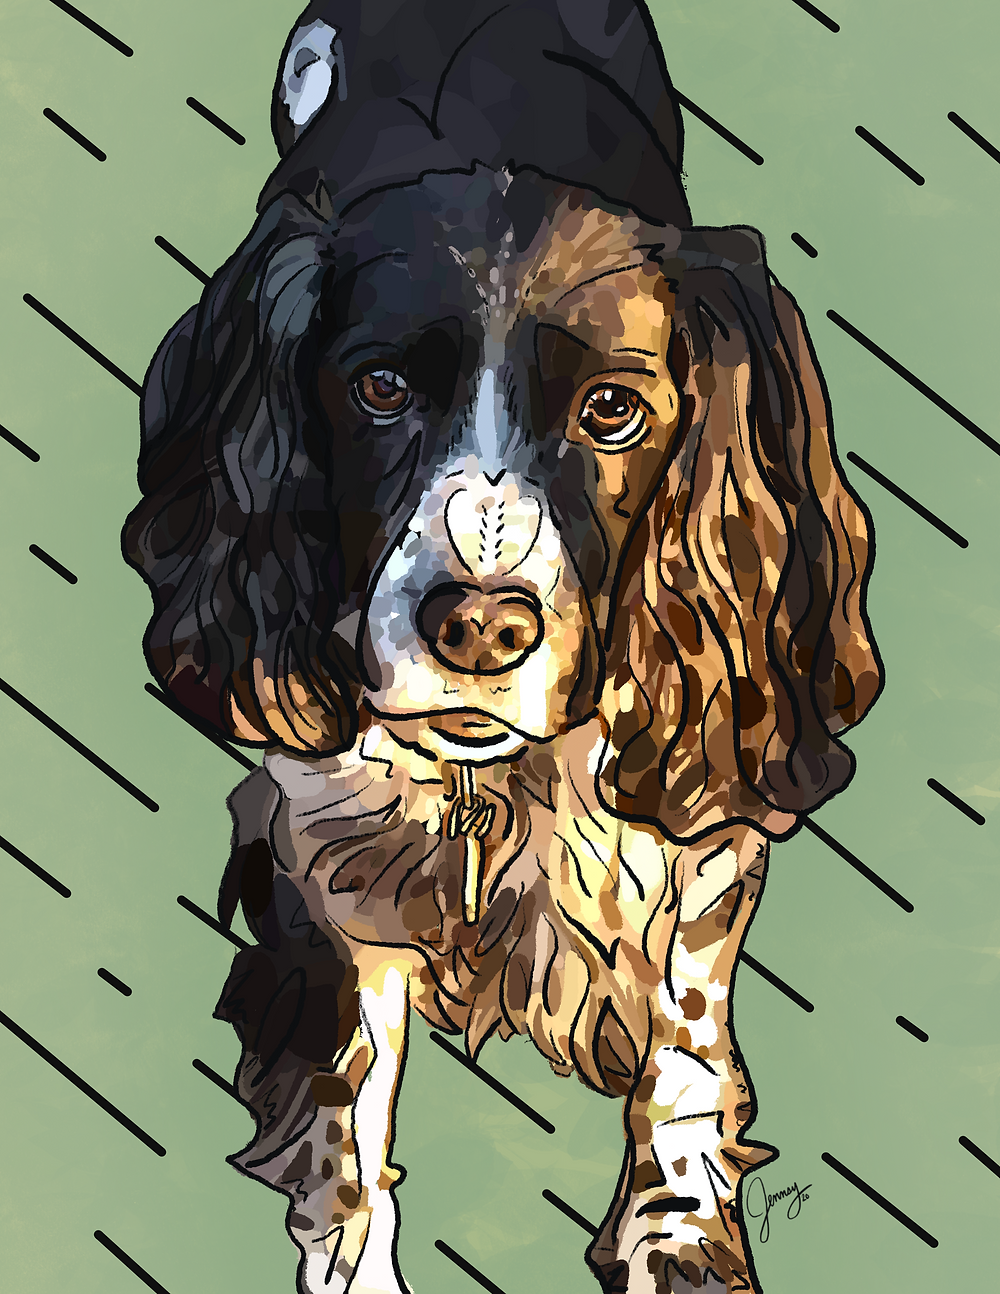 Final pet portrait of dog drawn on iPad with Procreate for an in memory gift